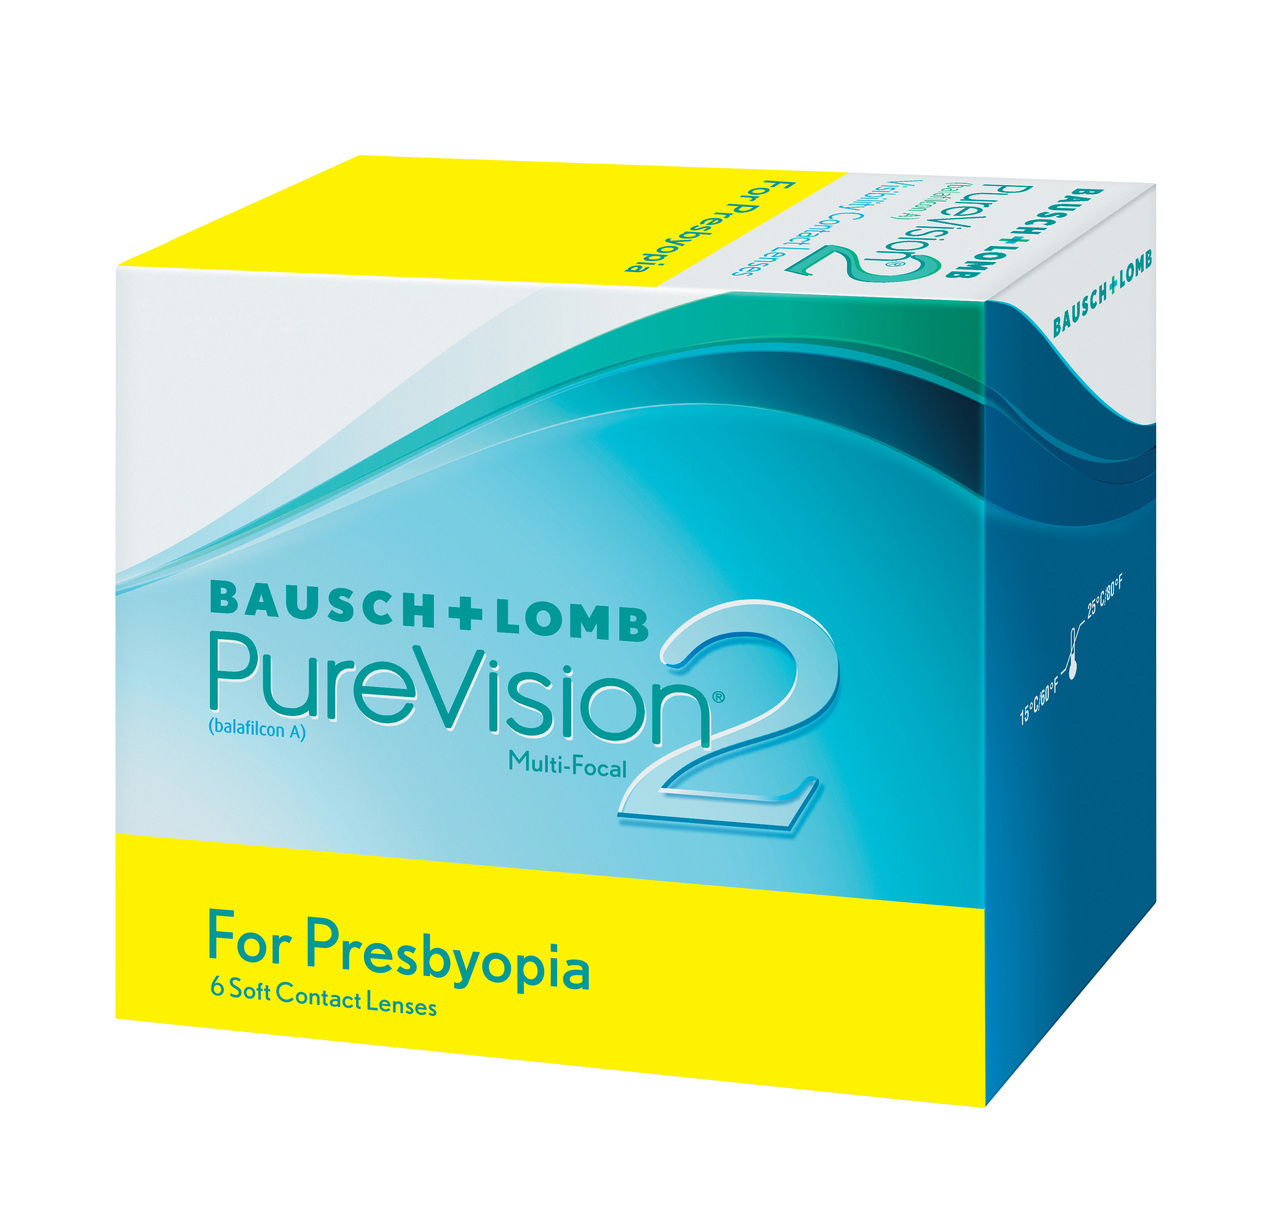 PureVision2HD Multi-Focal for Presbyopia 6pack